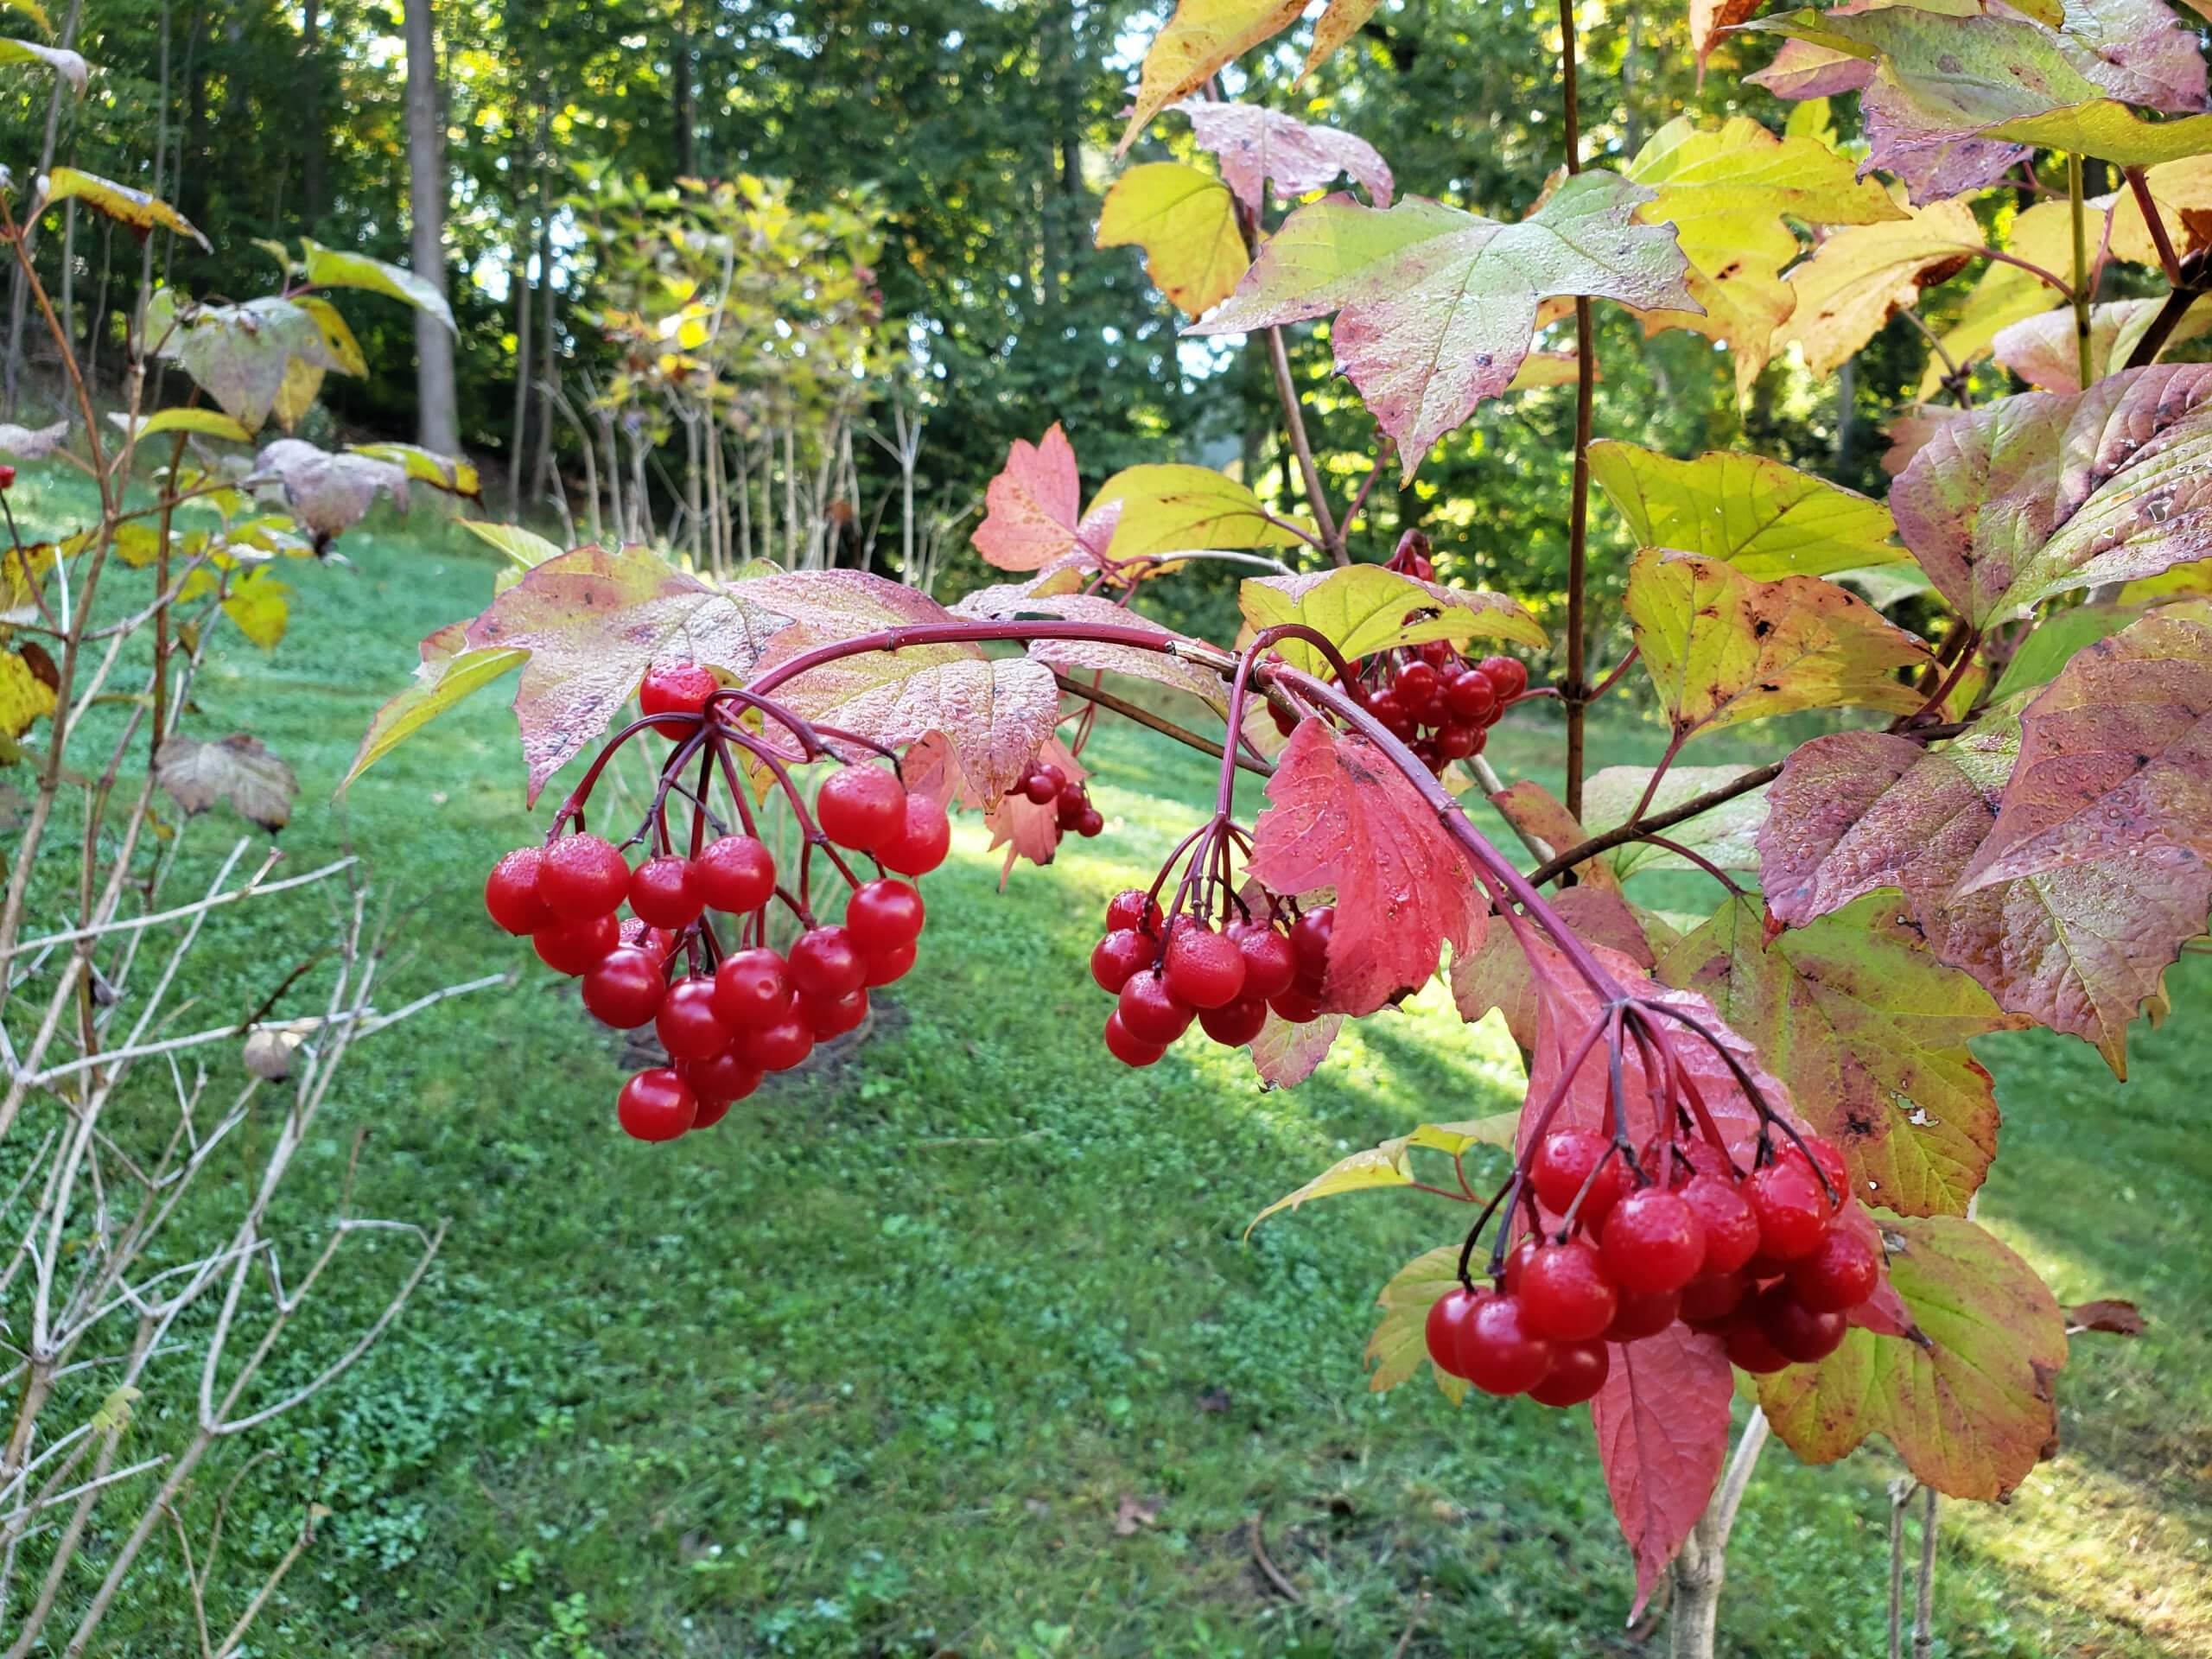 Leaves are setting to turn red as autumn approaches. Cluster of ruby red berries sit in the foreground.